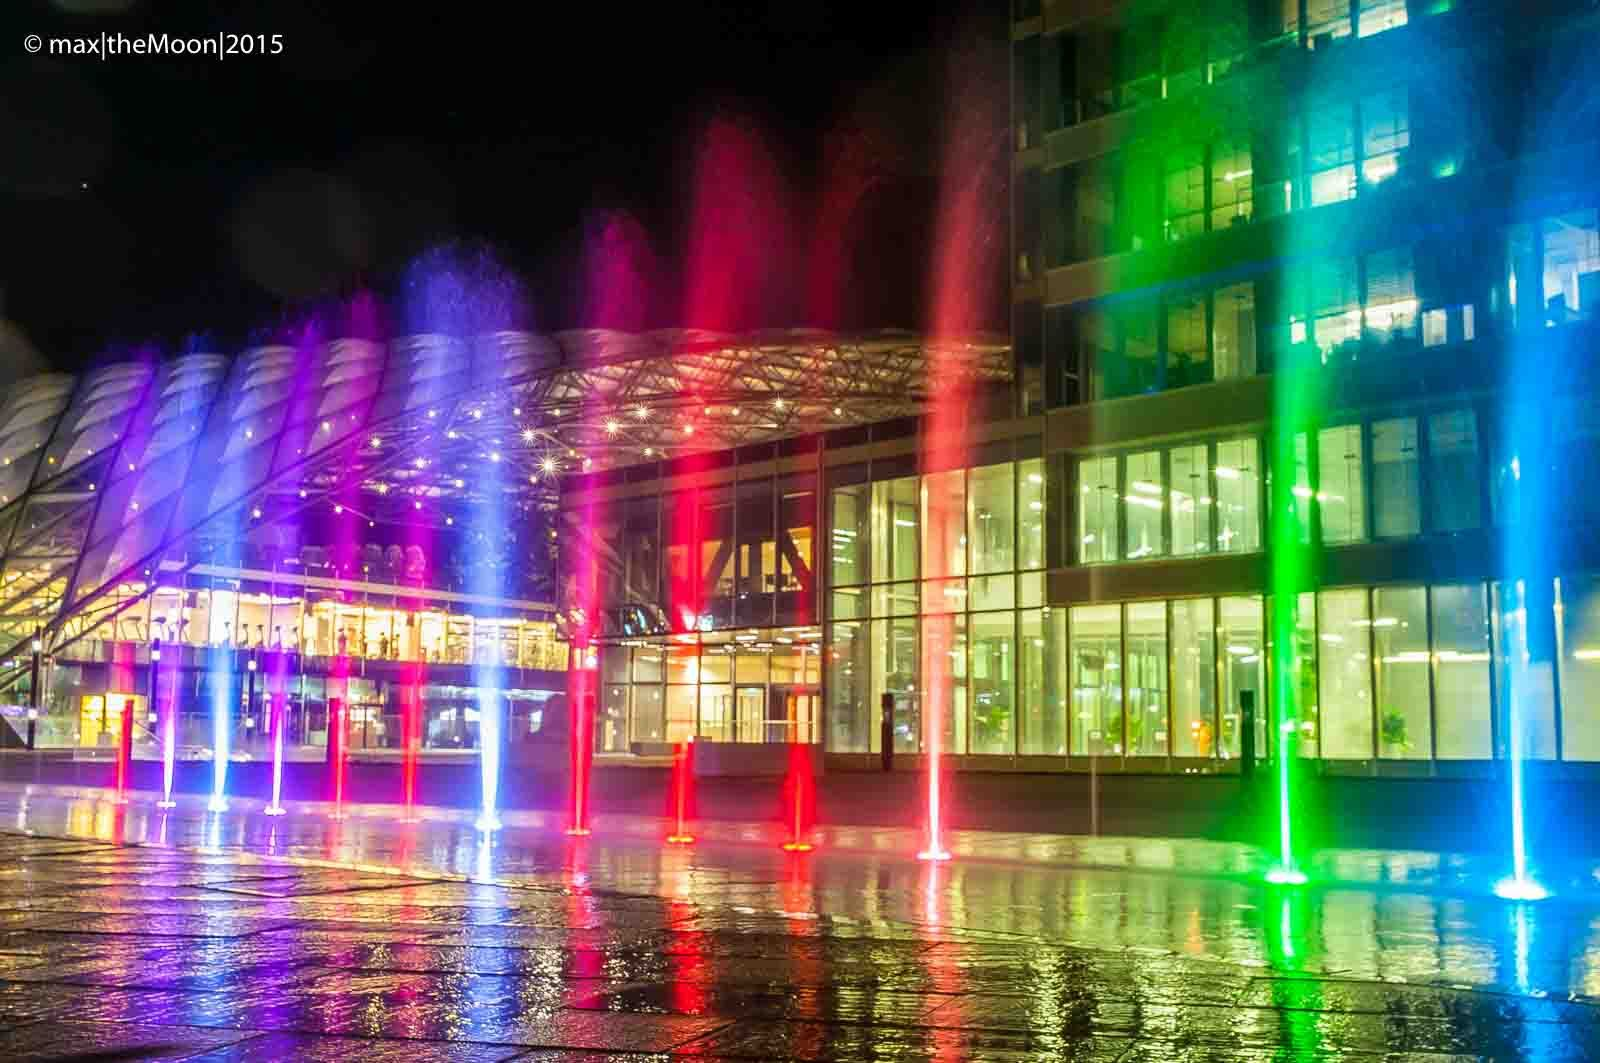 Color in Torre  Bologna - Italy  #bologna   #torreunipol   #color   #play   #wet   #water   #rainbow